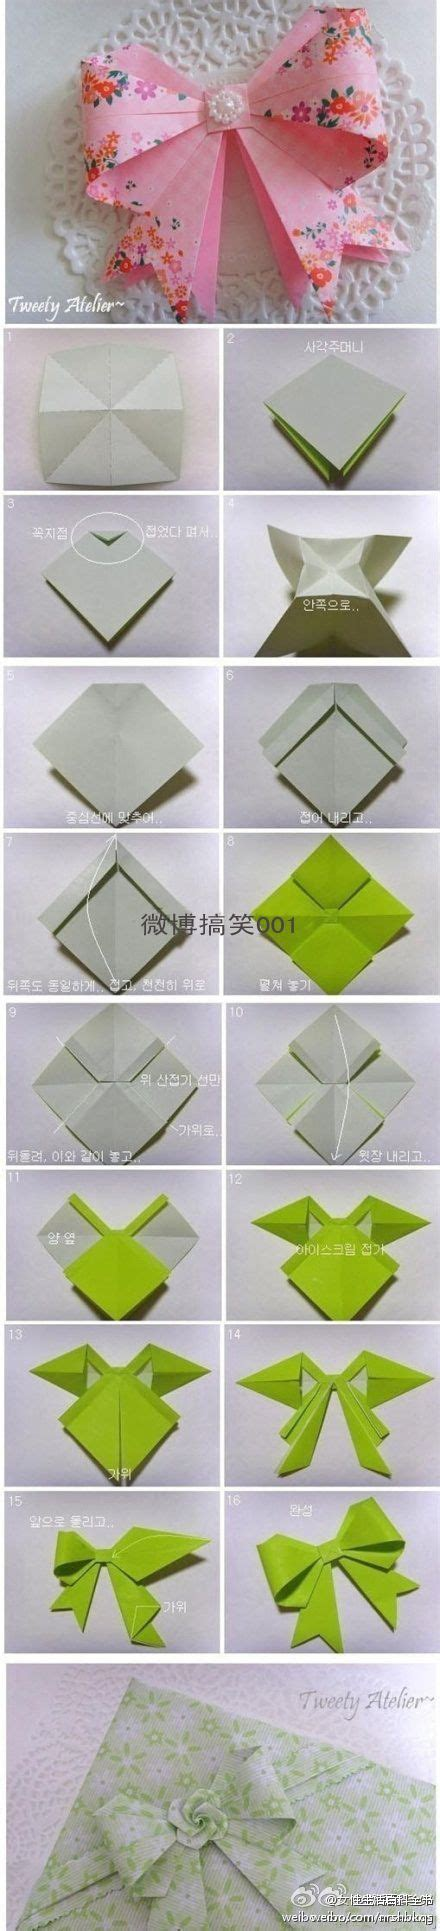 origami gift bow origami bows crafty